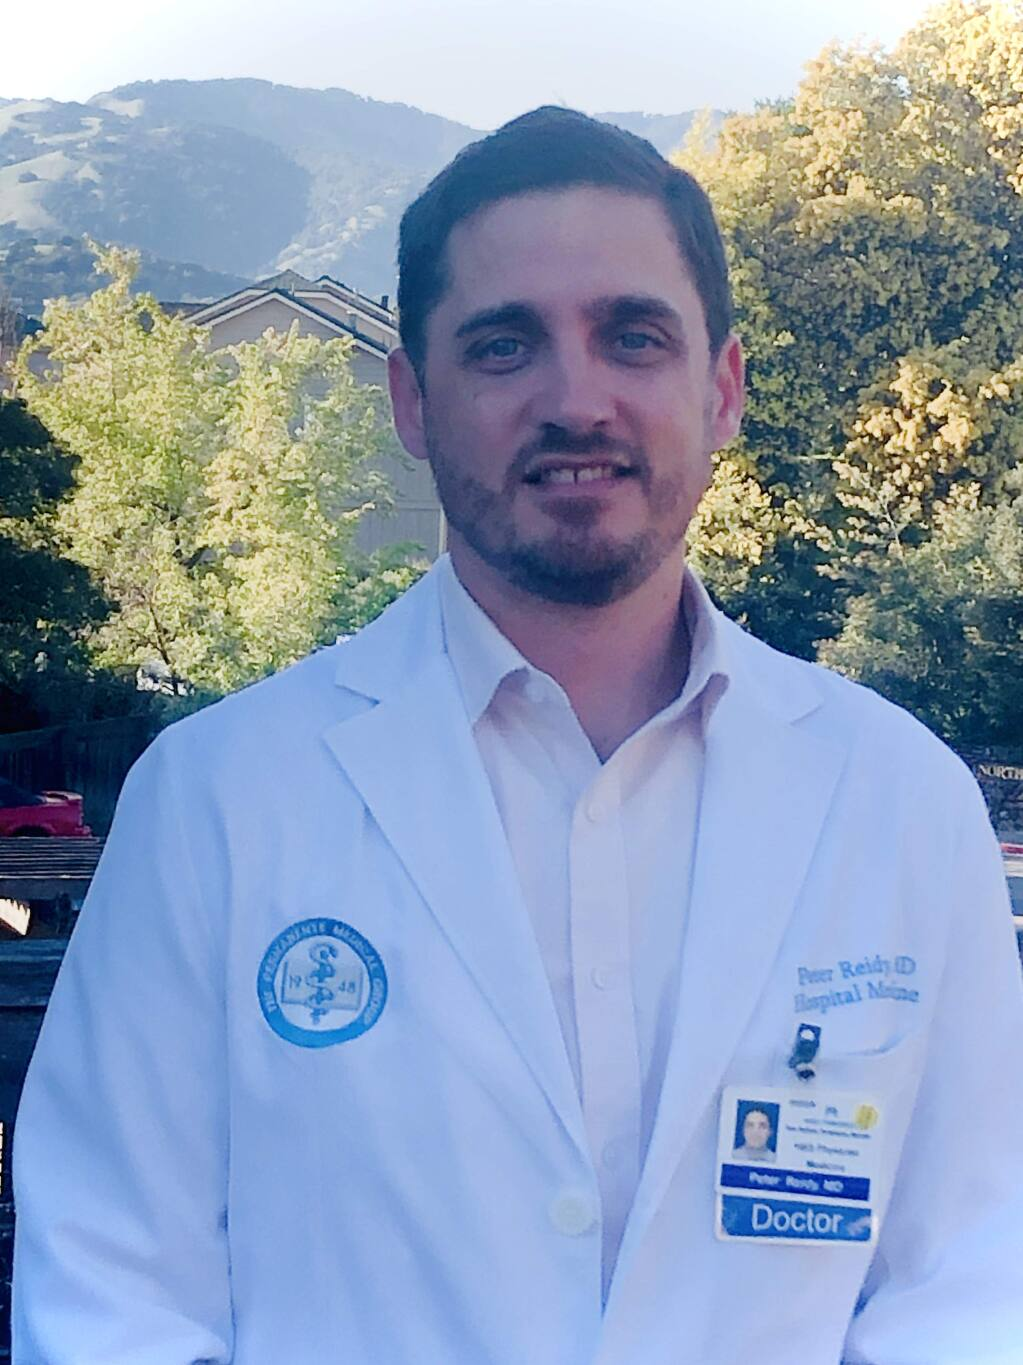 Peter Reidy, M.D., 39, chief of skilled nursing facility medicine, Kaiser Permanente San Rafael Medical Center, is a 2020 Forty Under 40 winner. (courtesy photo)